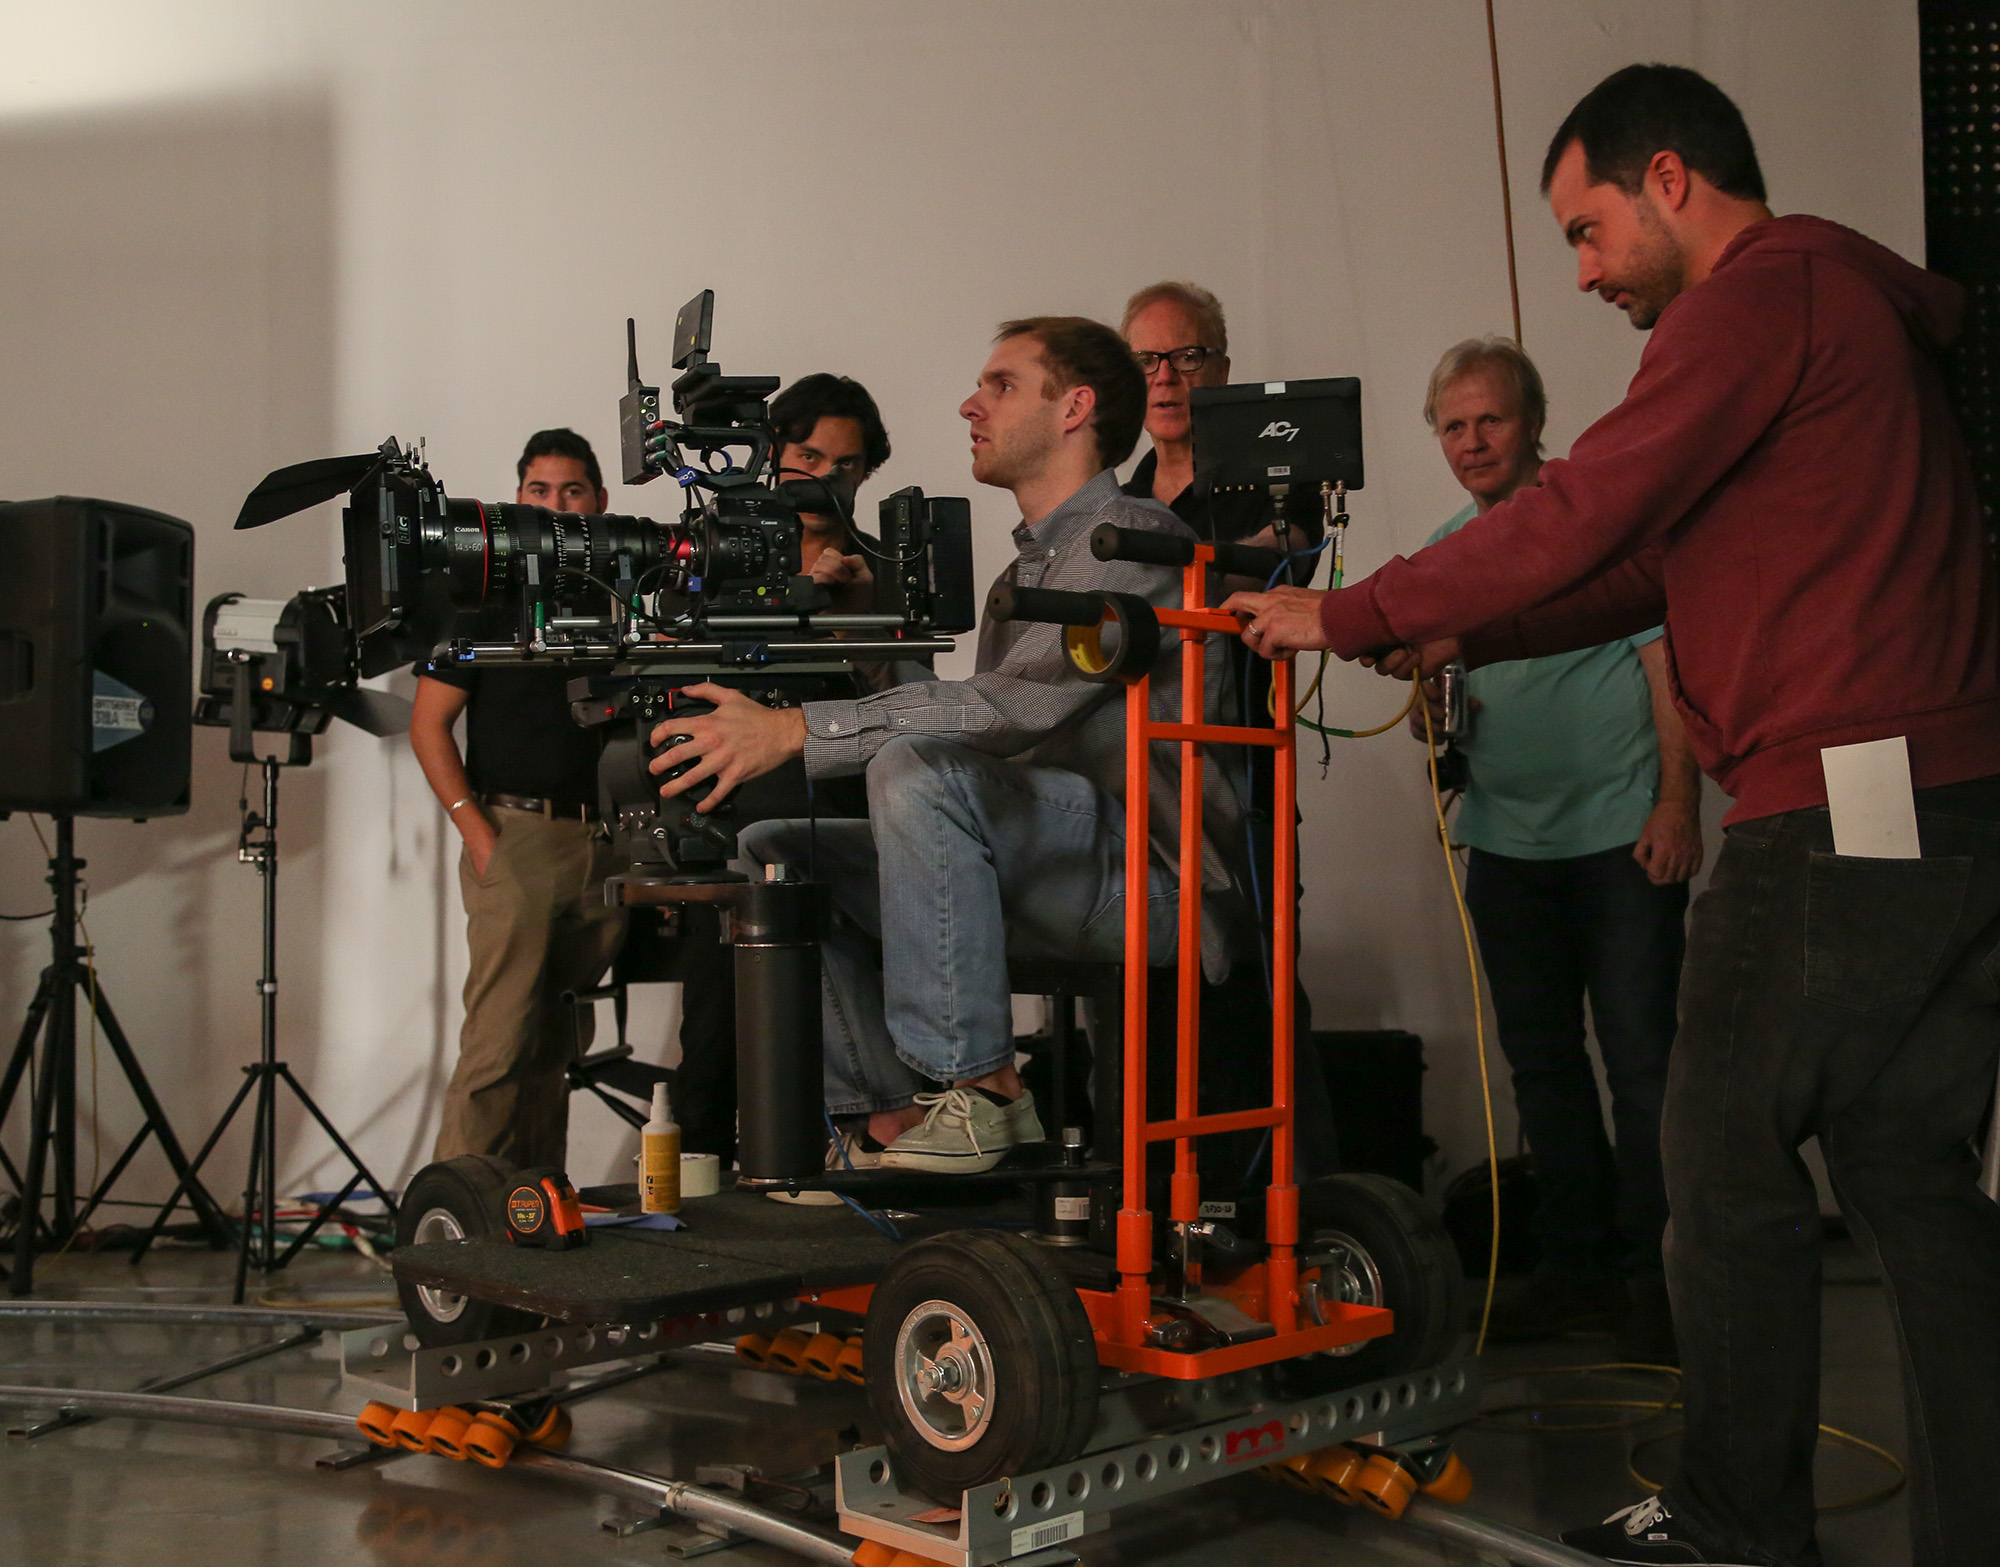 Crudo and Kenny (in background) watch students execute a dolly move. (Photo: Alex Beatty)